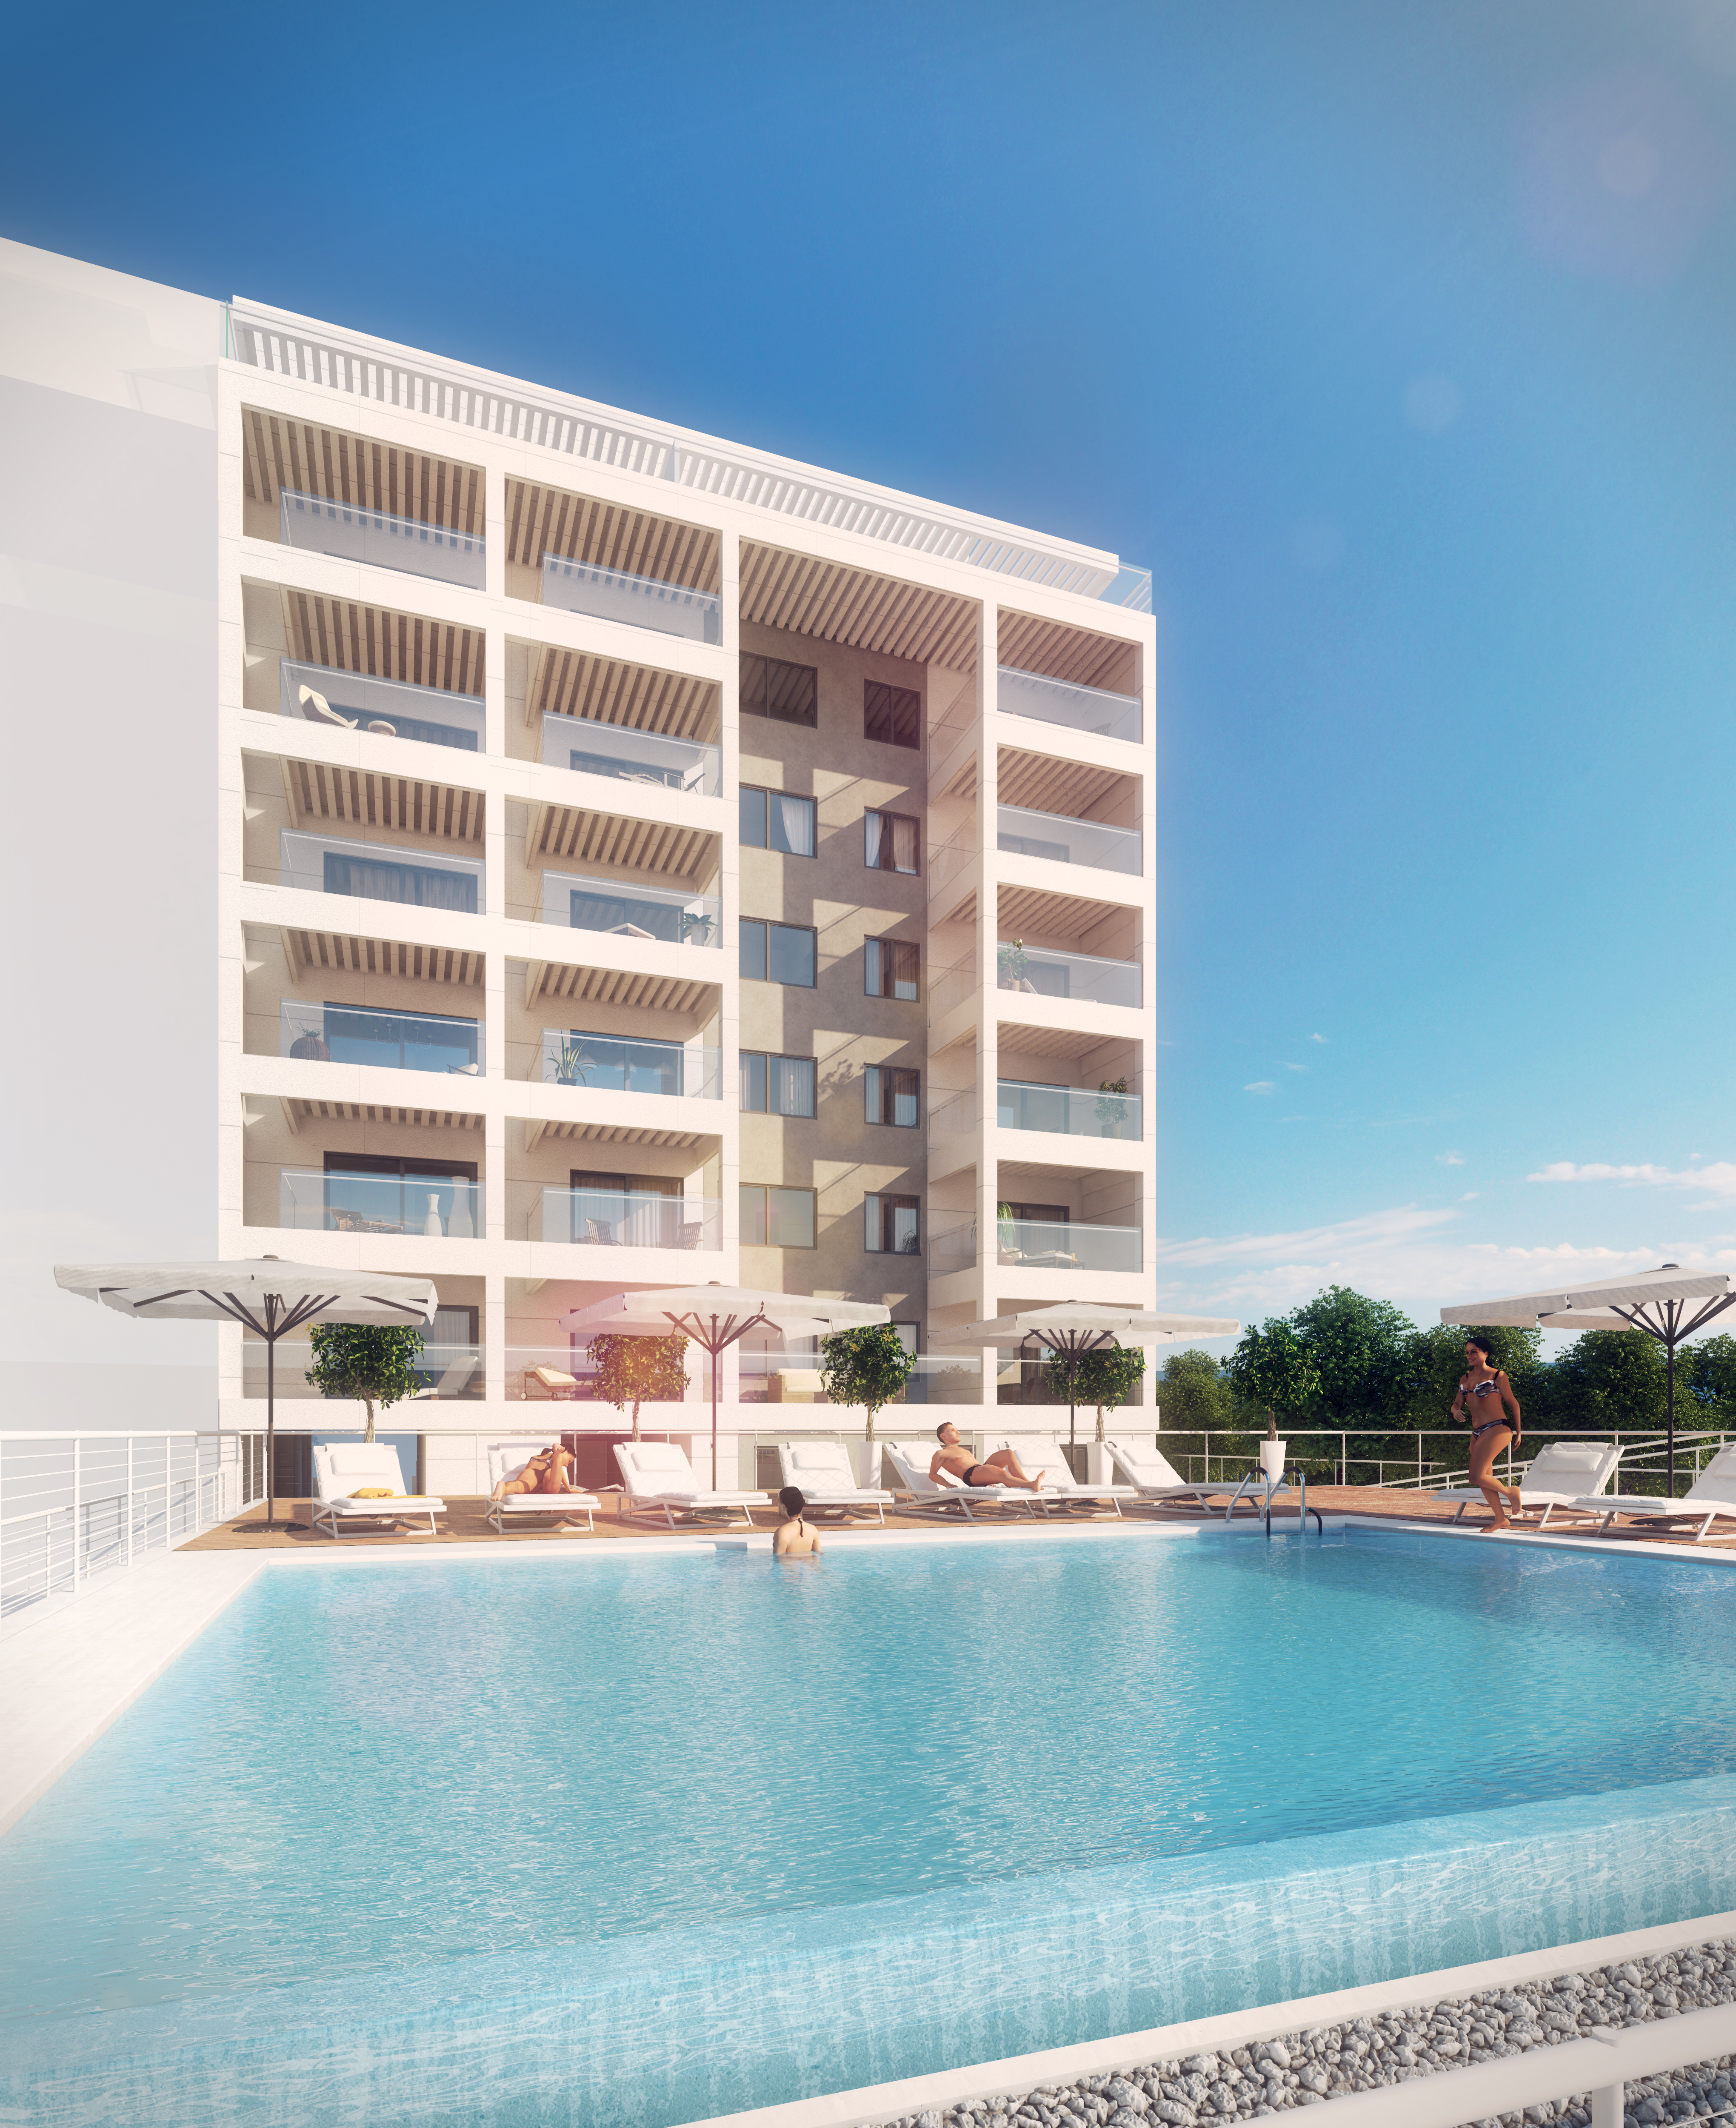 3 bedroom Apartment for sale in Torre del Mar